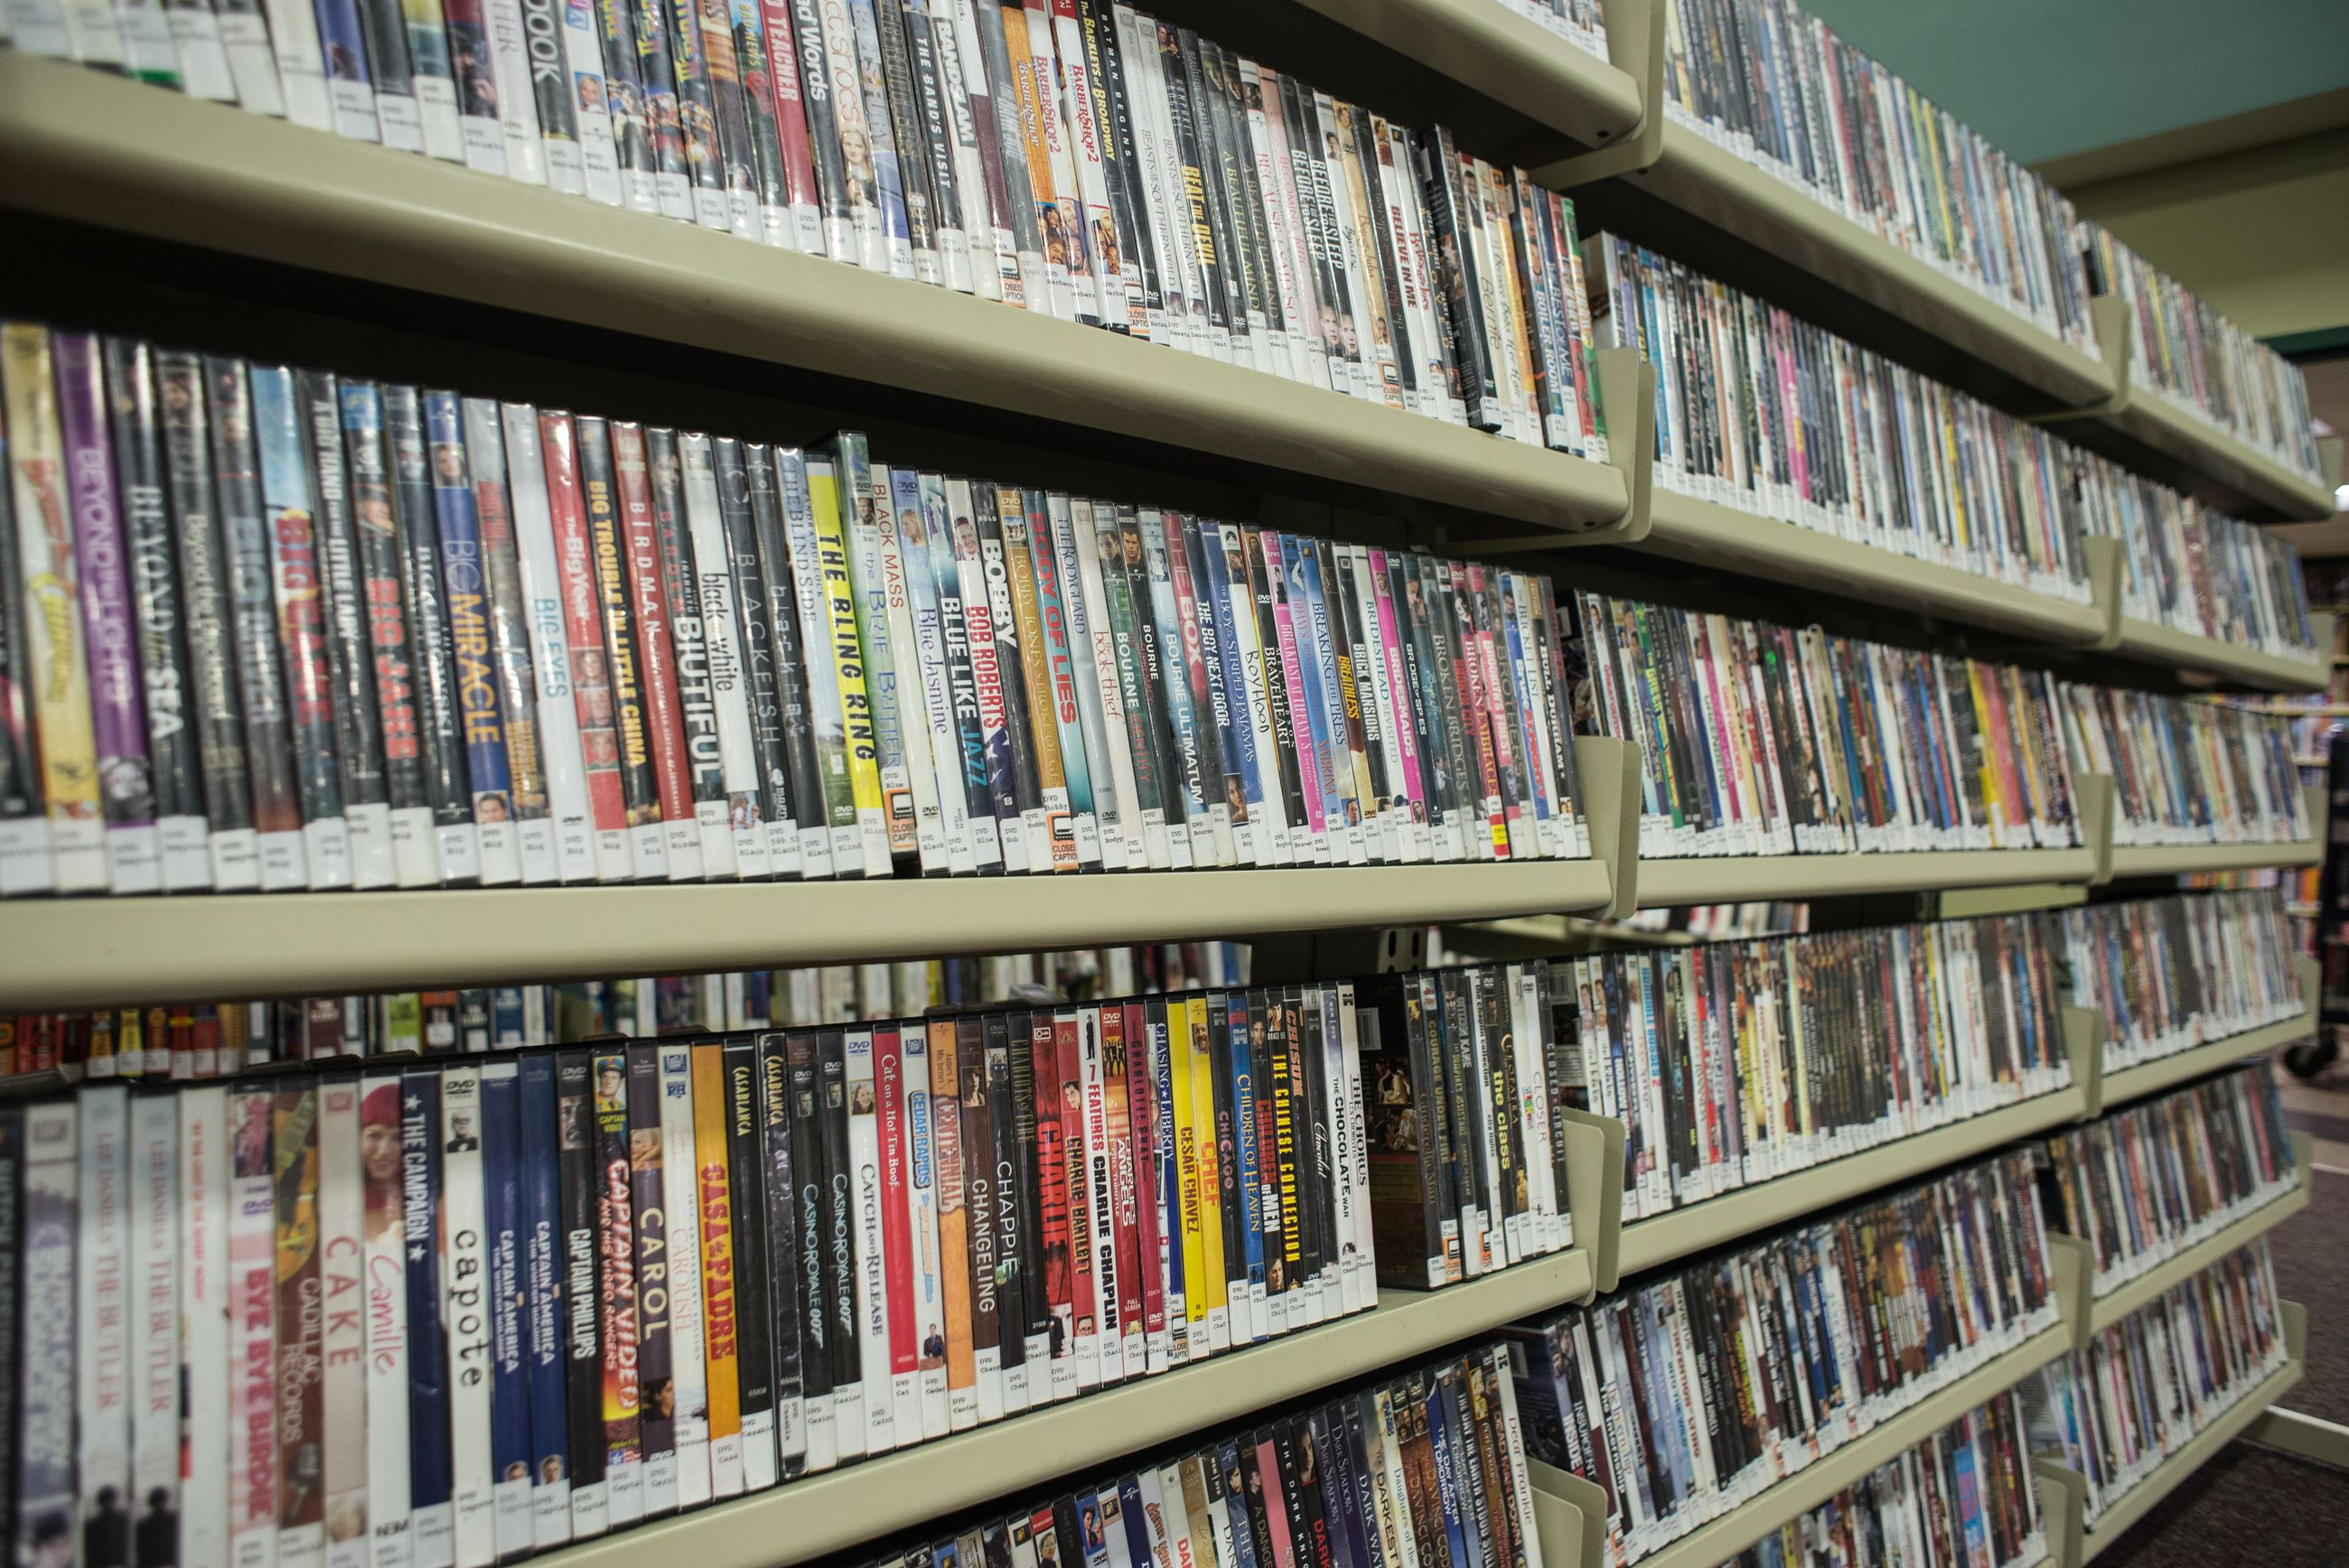 Image of shelves of DVDs